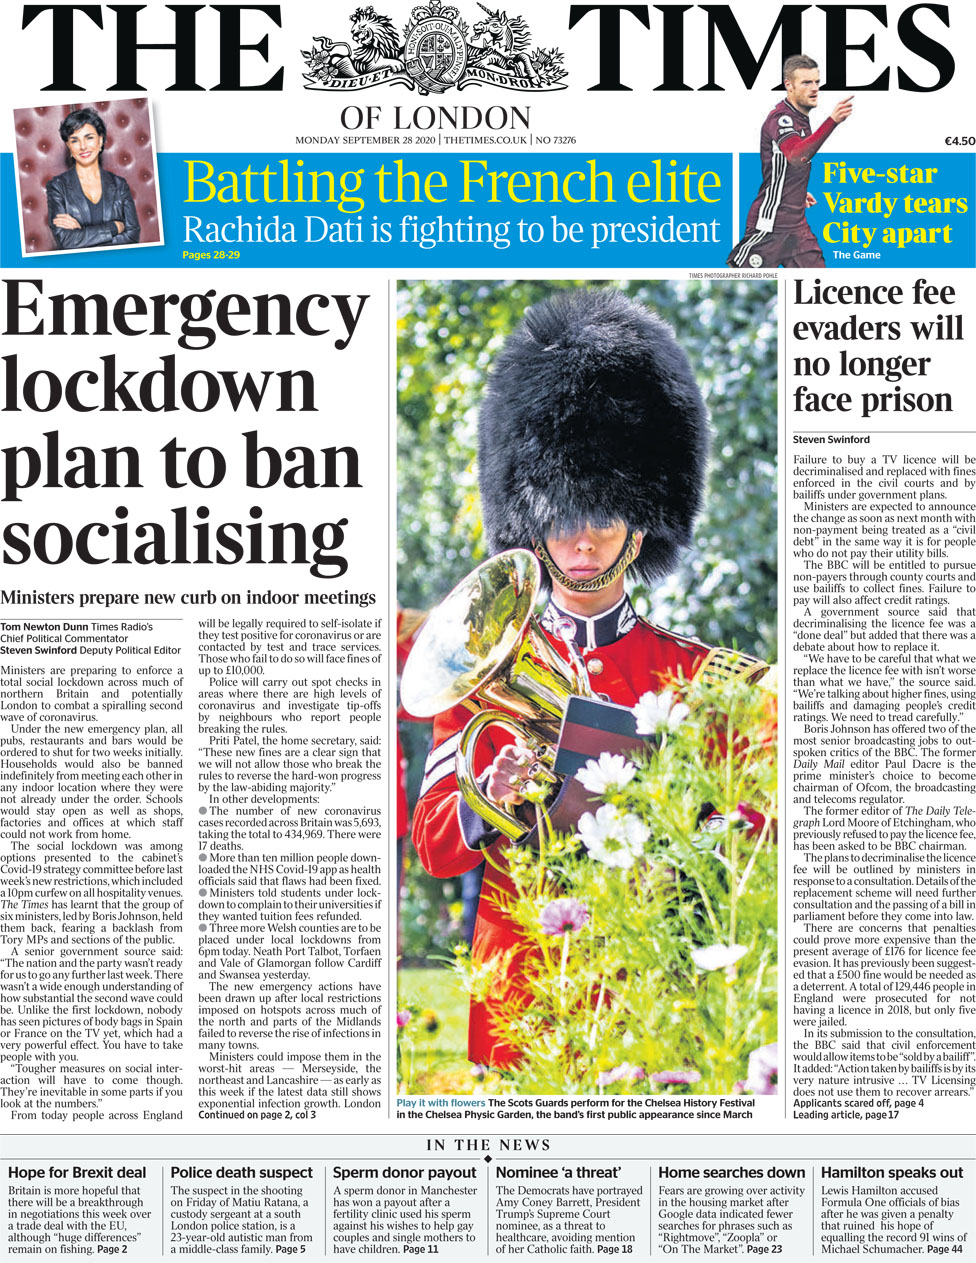 The Times 28 Sep